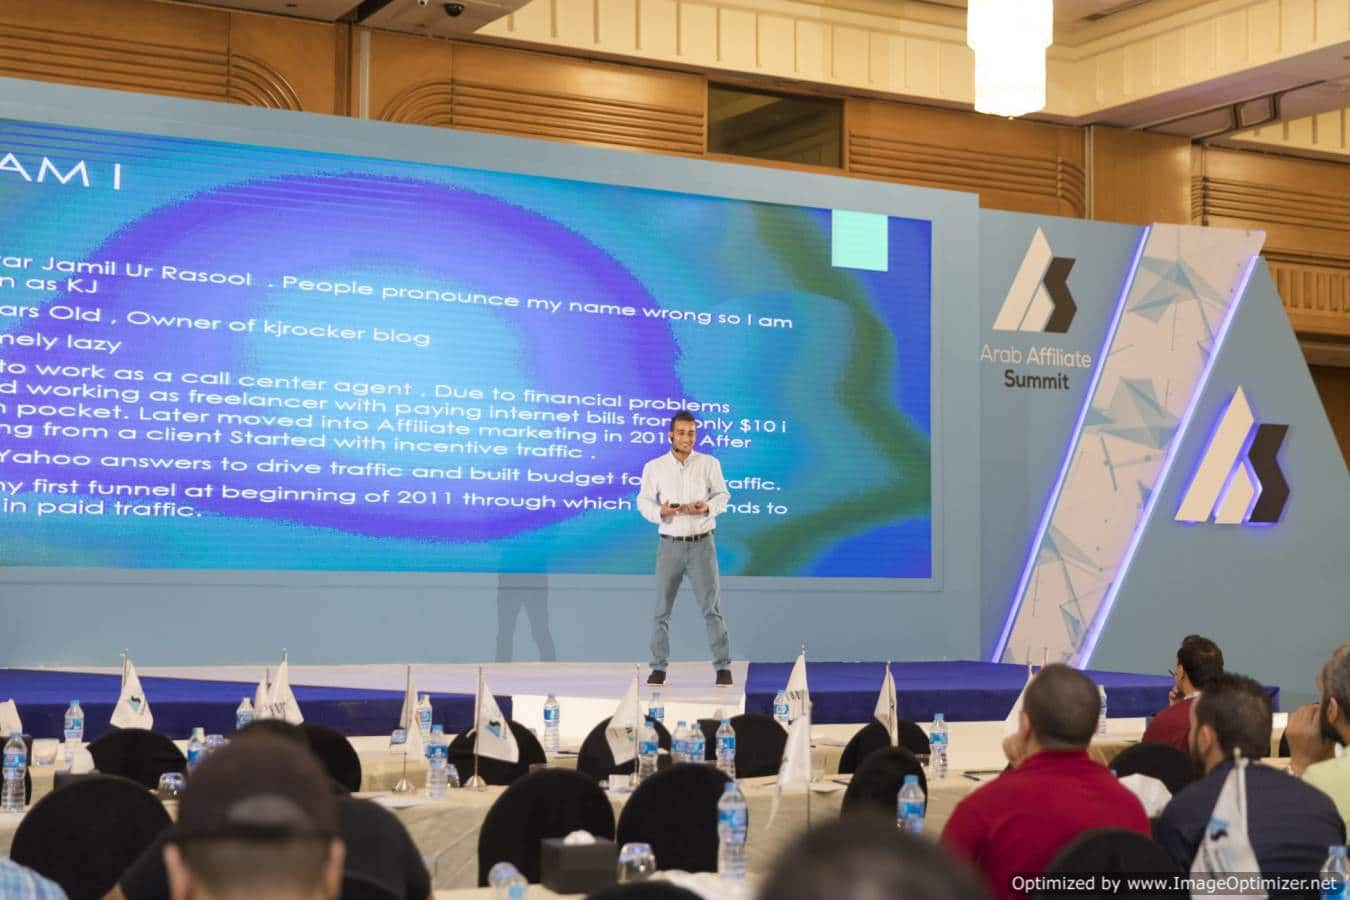 Kj Rocker Speaking at Arab Affilate Summit 2017